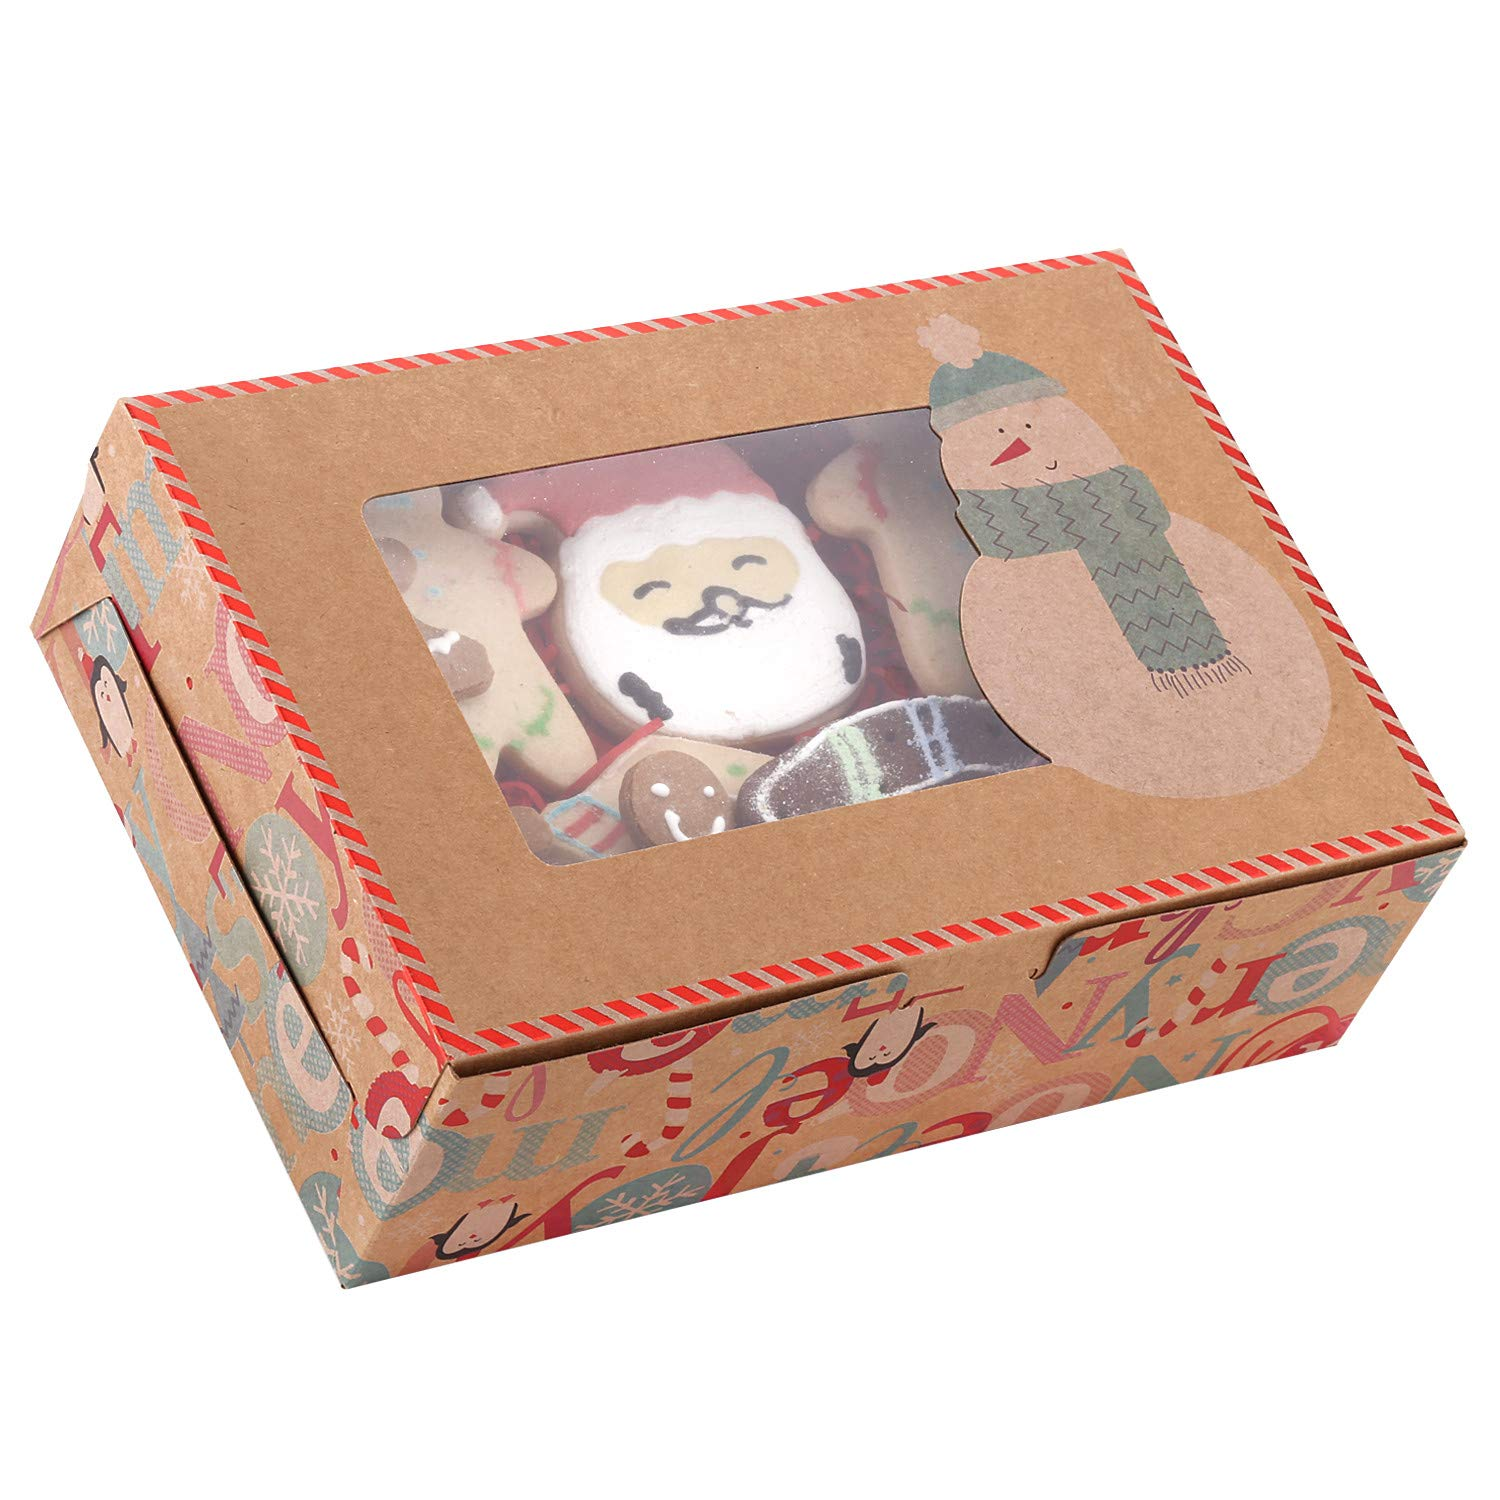 20-Pack Christmas Cookie Gift Boxes with Window, 8.7'' x 6'' x 2.8'', Brown Kraft Bakery Boxes, Christmas Treat Boxes for Doughnut and Cookie, Holiday Design (Snowman)